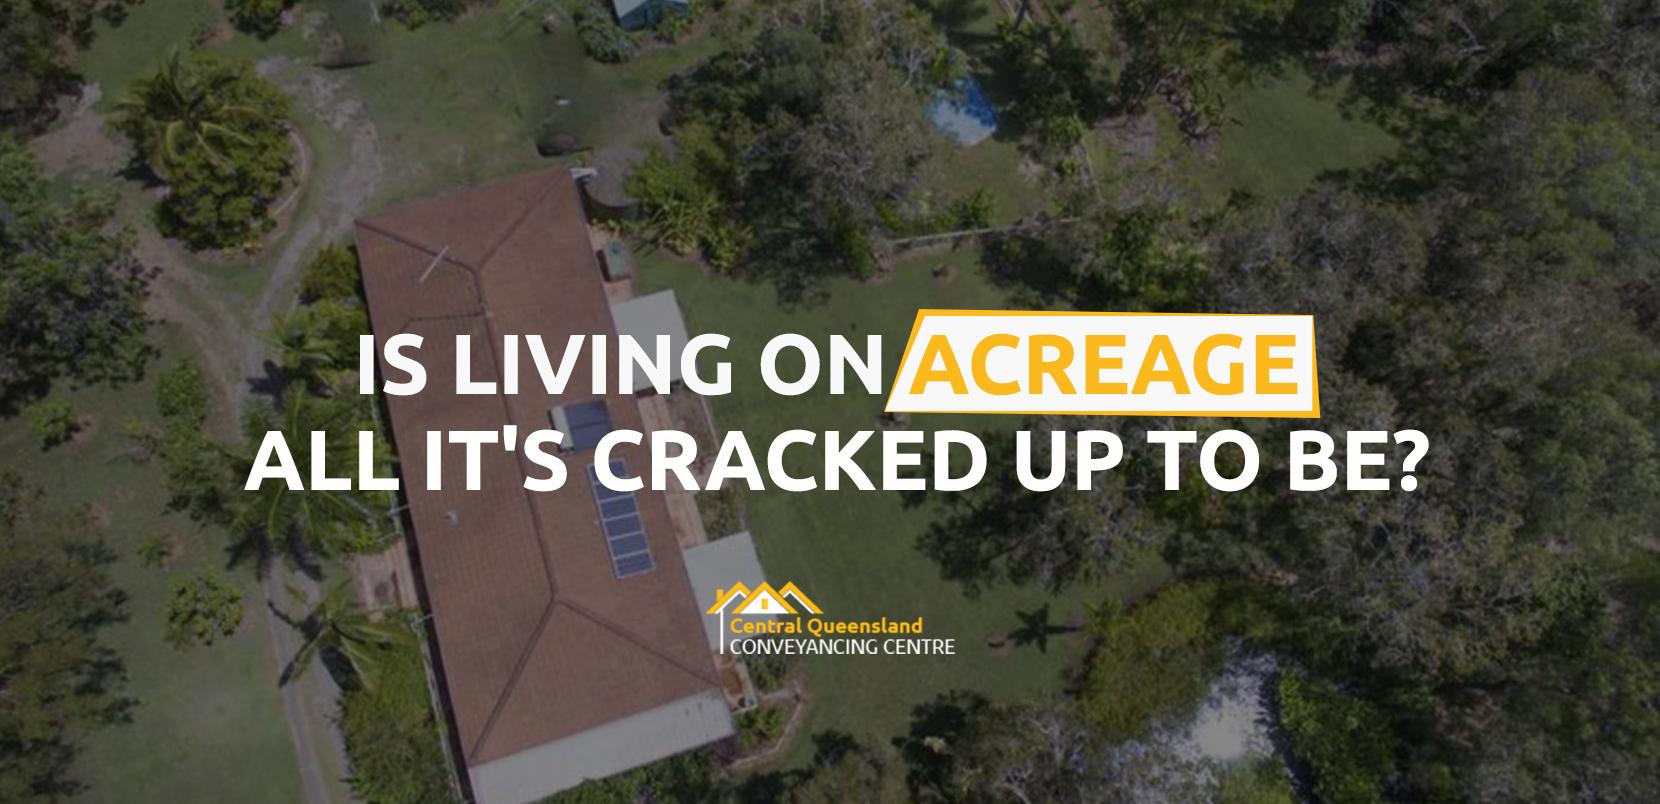 Is-Living-On-Acreage-All-It's-Cracked-Up-To-Be-Mackay-Conveyancing